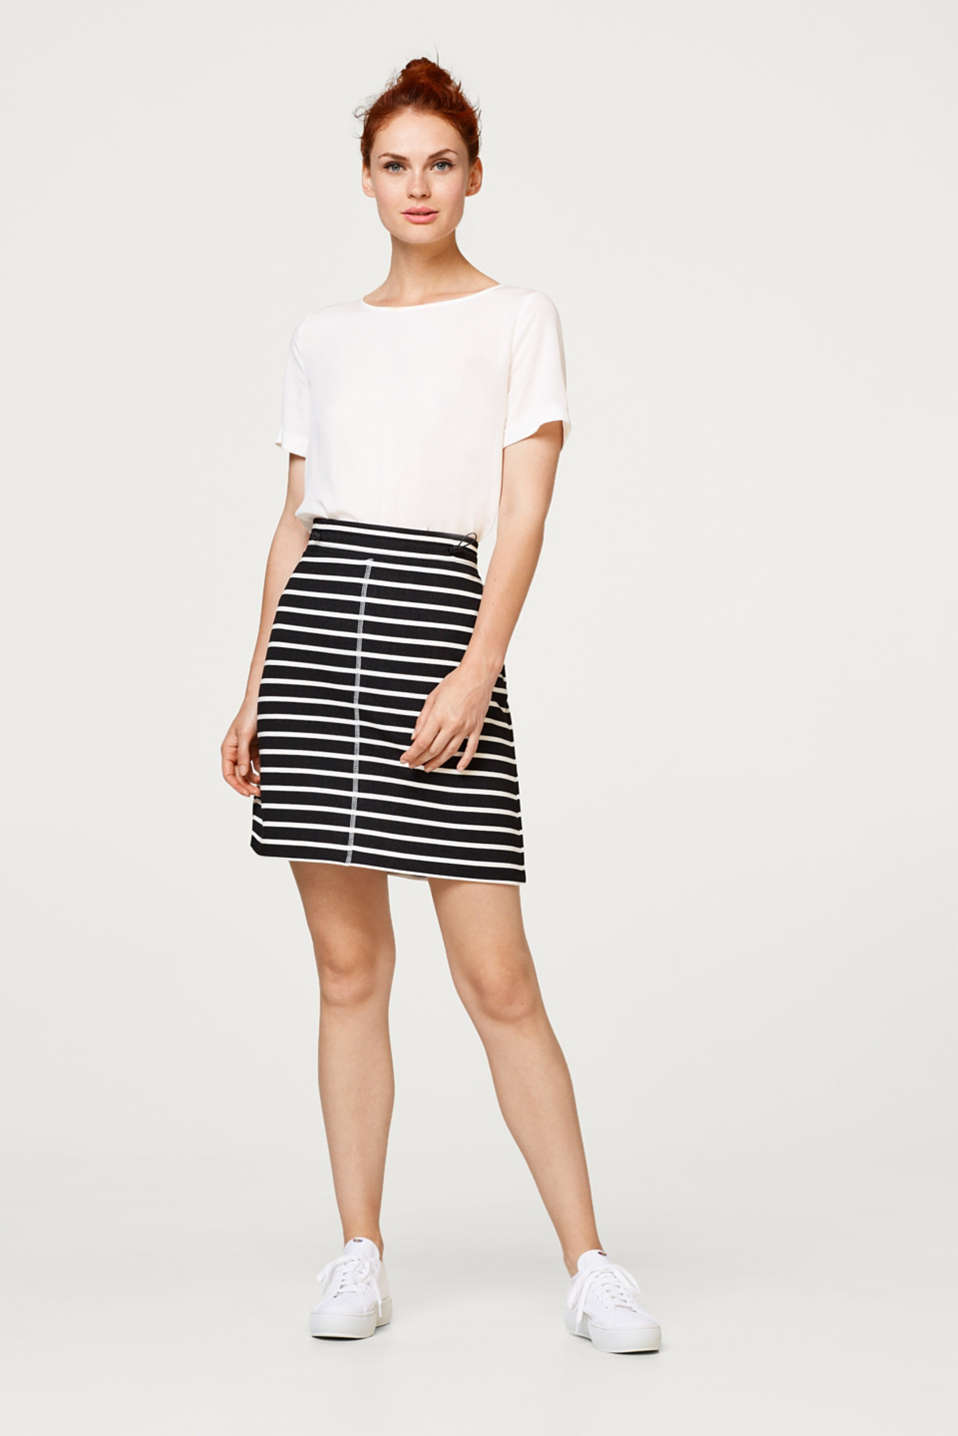 Comfortable sweatshirt skirt in a striped look